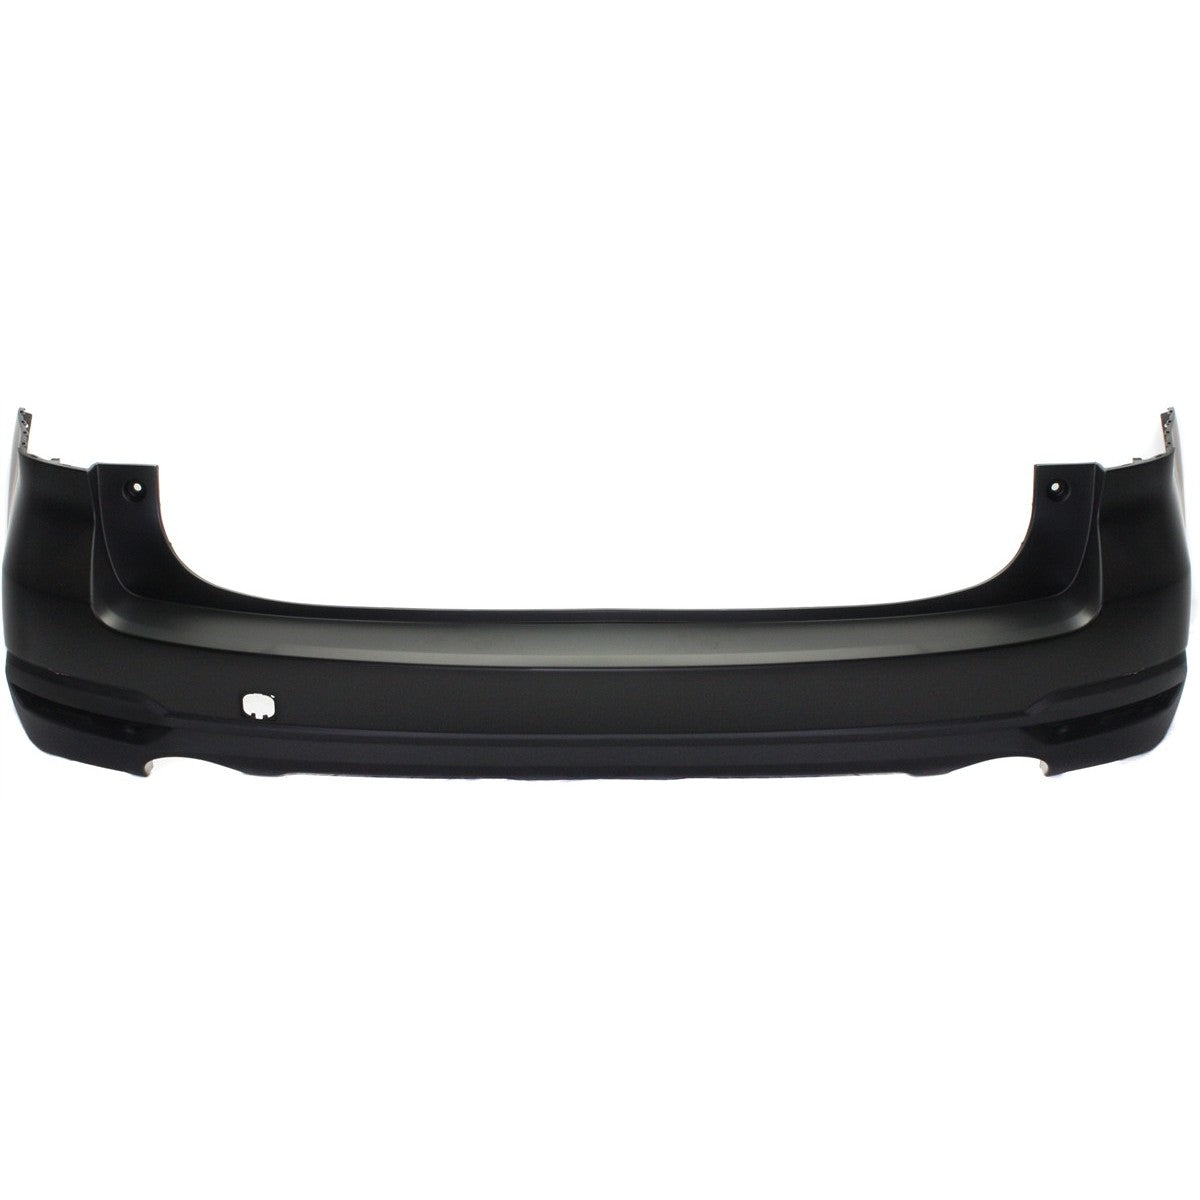 2014-2018 Subaru Forester Rear Bumper